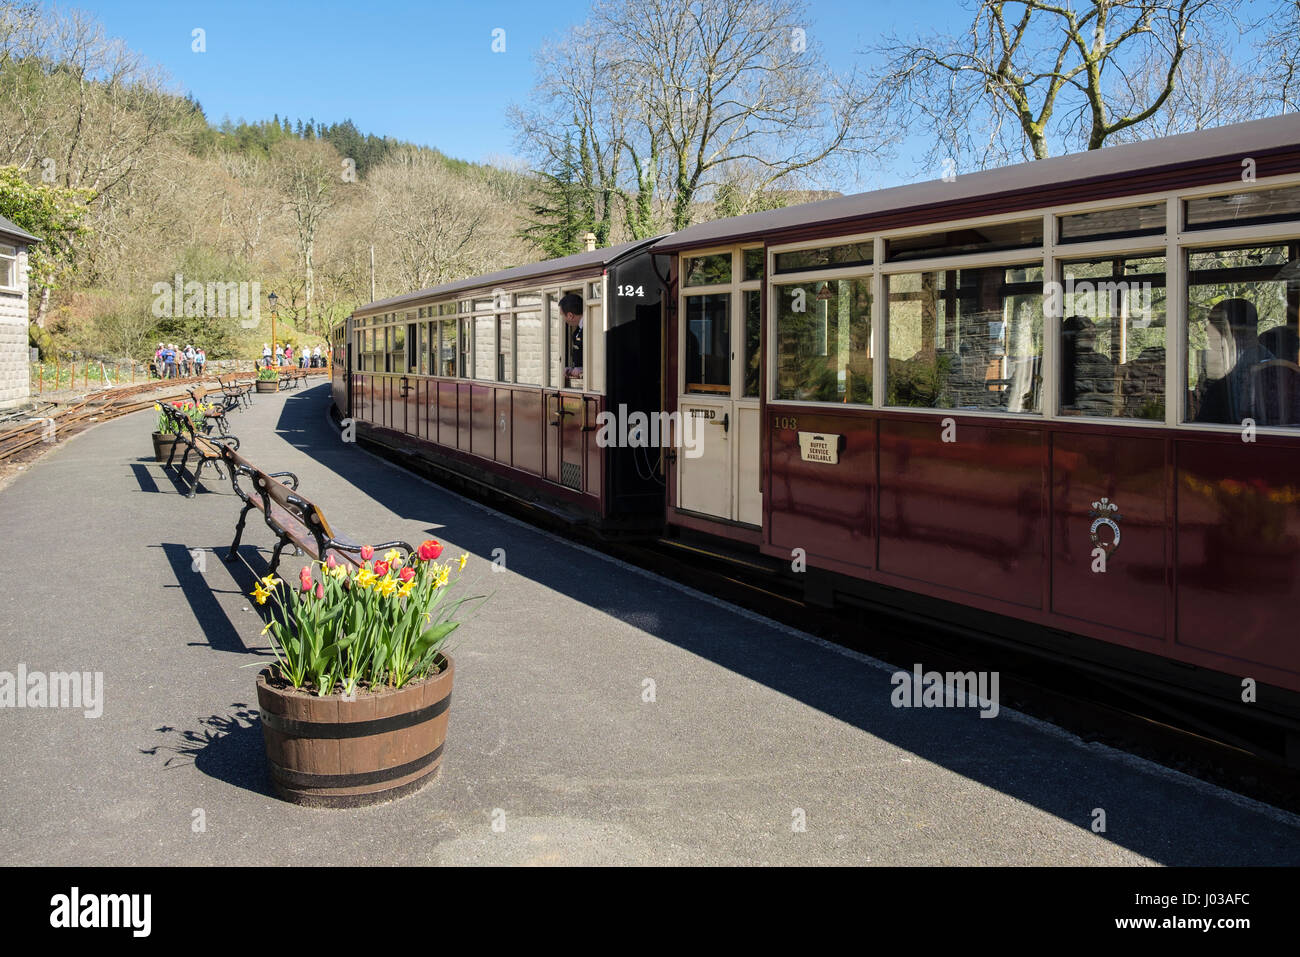 Train leaving platform in station on heritage narrow-gauge Ffestiniog Railway line at Tan-y-Bwlch, Gwynedd, North - Stock Image